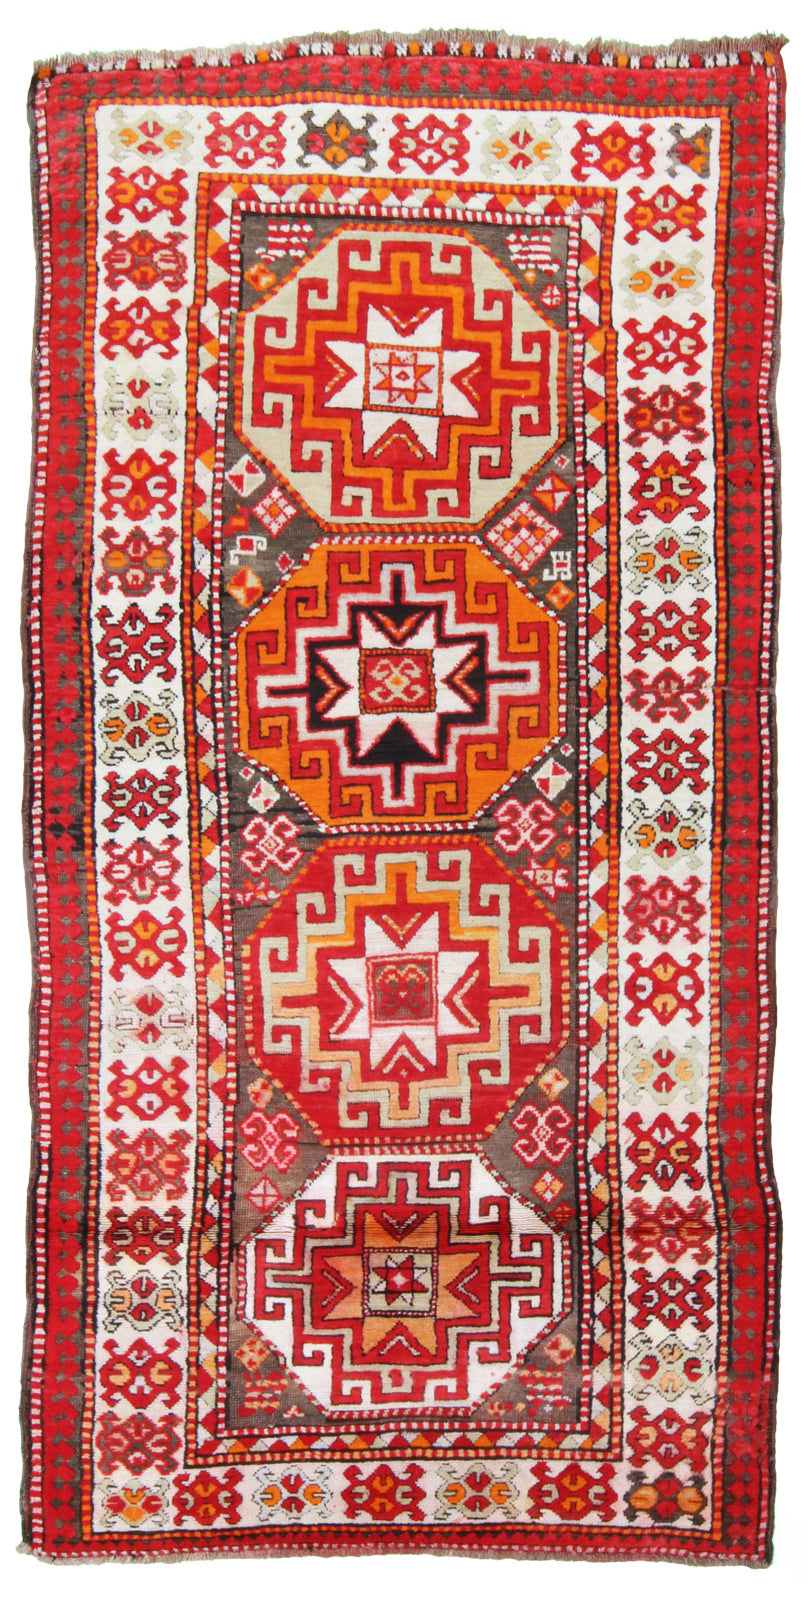 Kazak Orange-Turco Persian Rug Company Inc.